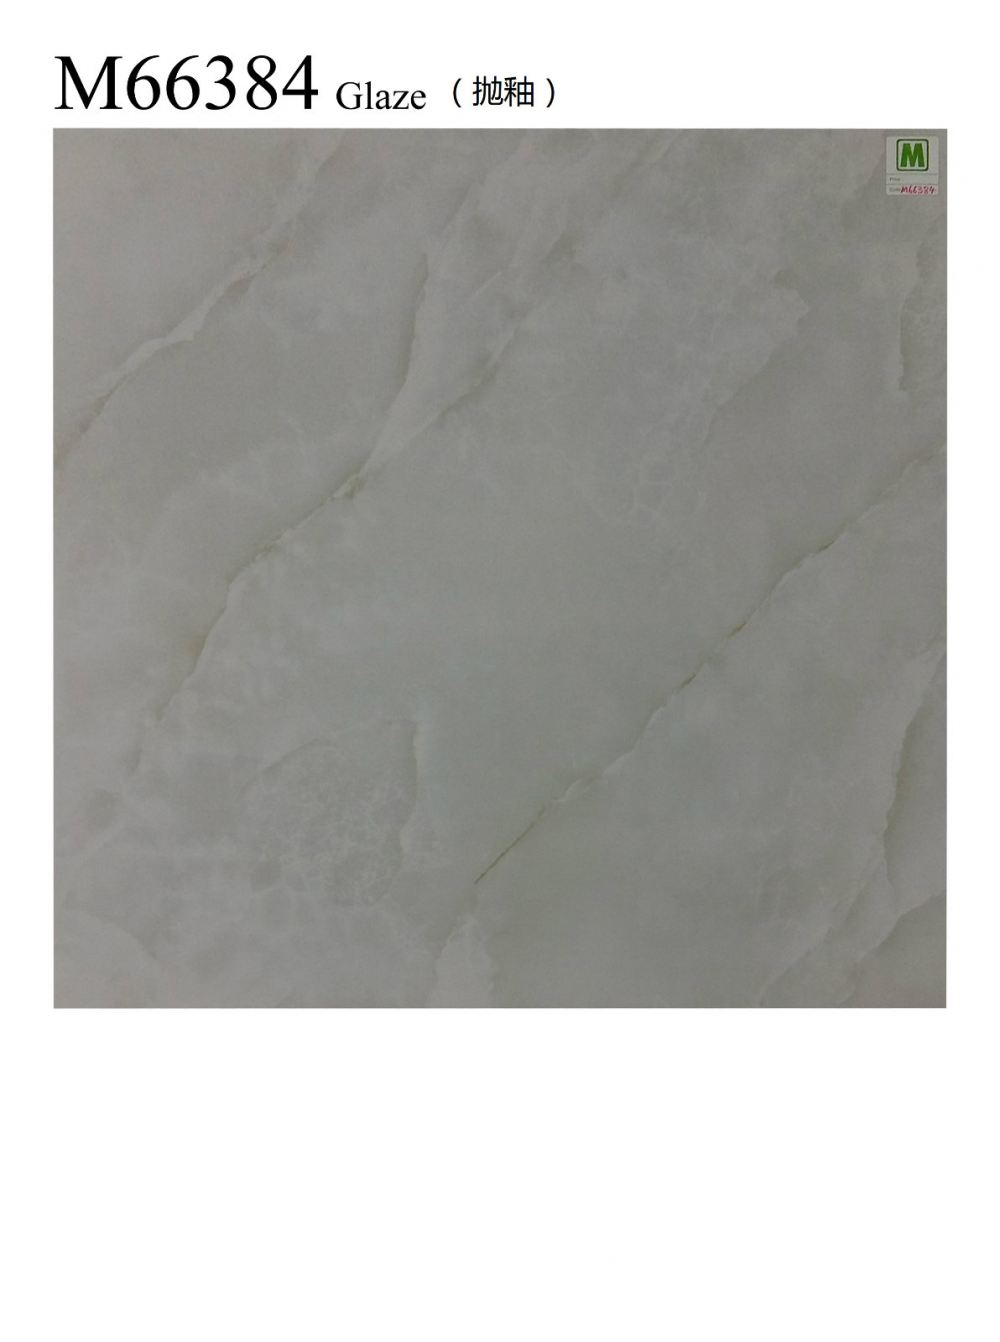 M66384 FLOOR TILES TILE Supplier, Suppliers, Supply, Supplies ~ Itoli Ceramic Sdn Bhd